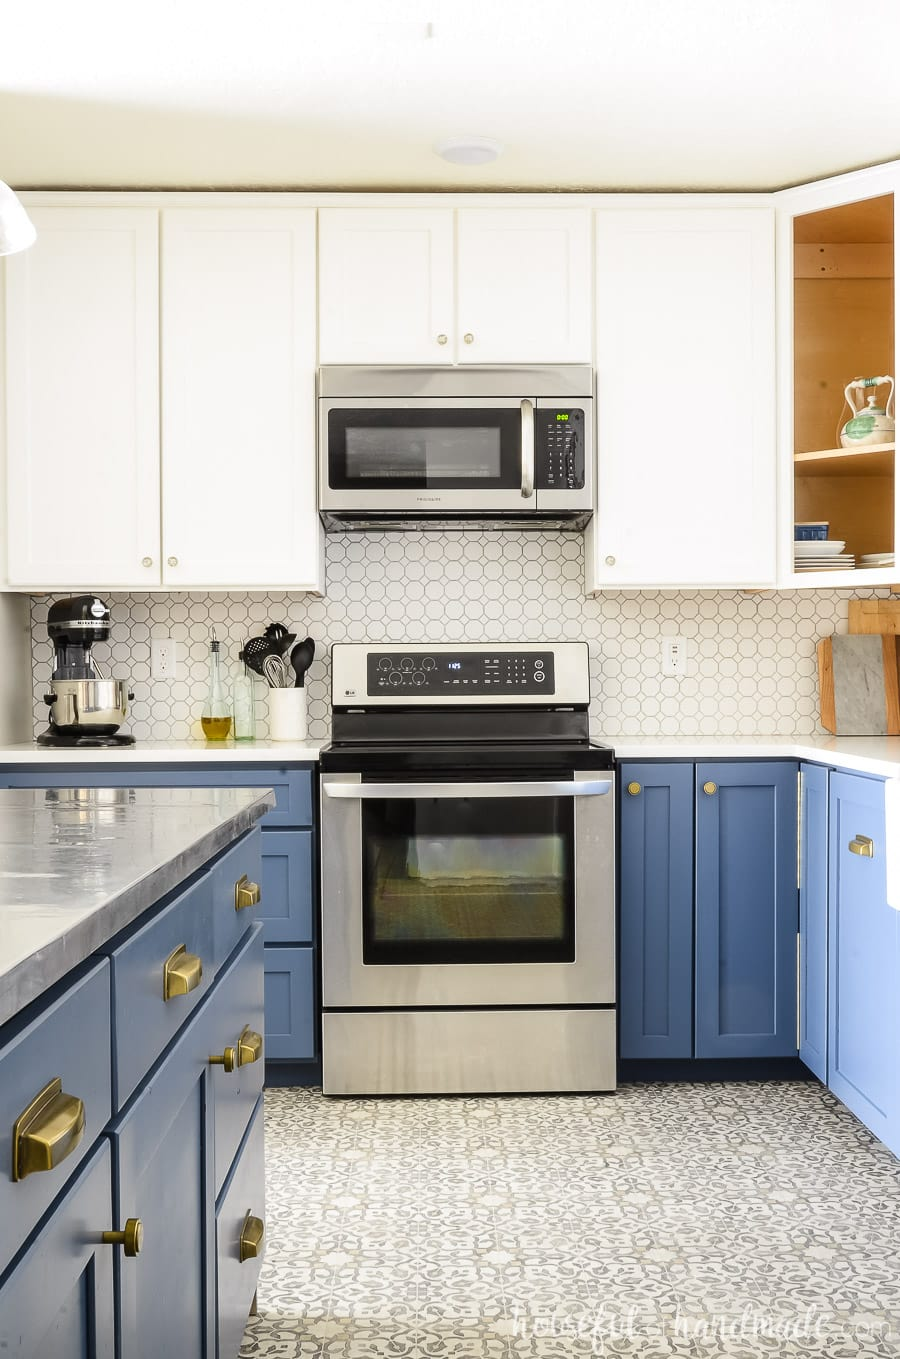 Kitchen remodel showing DIY routed cabinet doors. Blue lower cabinets and white upper cabinets.